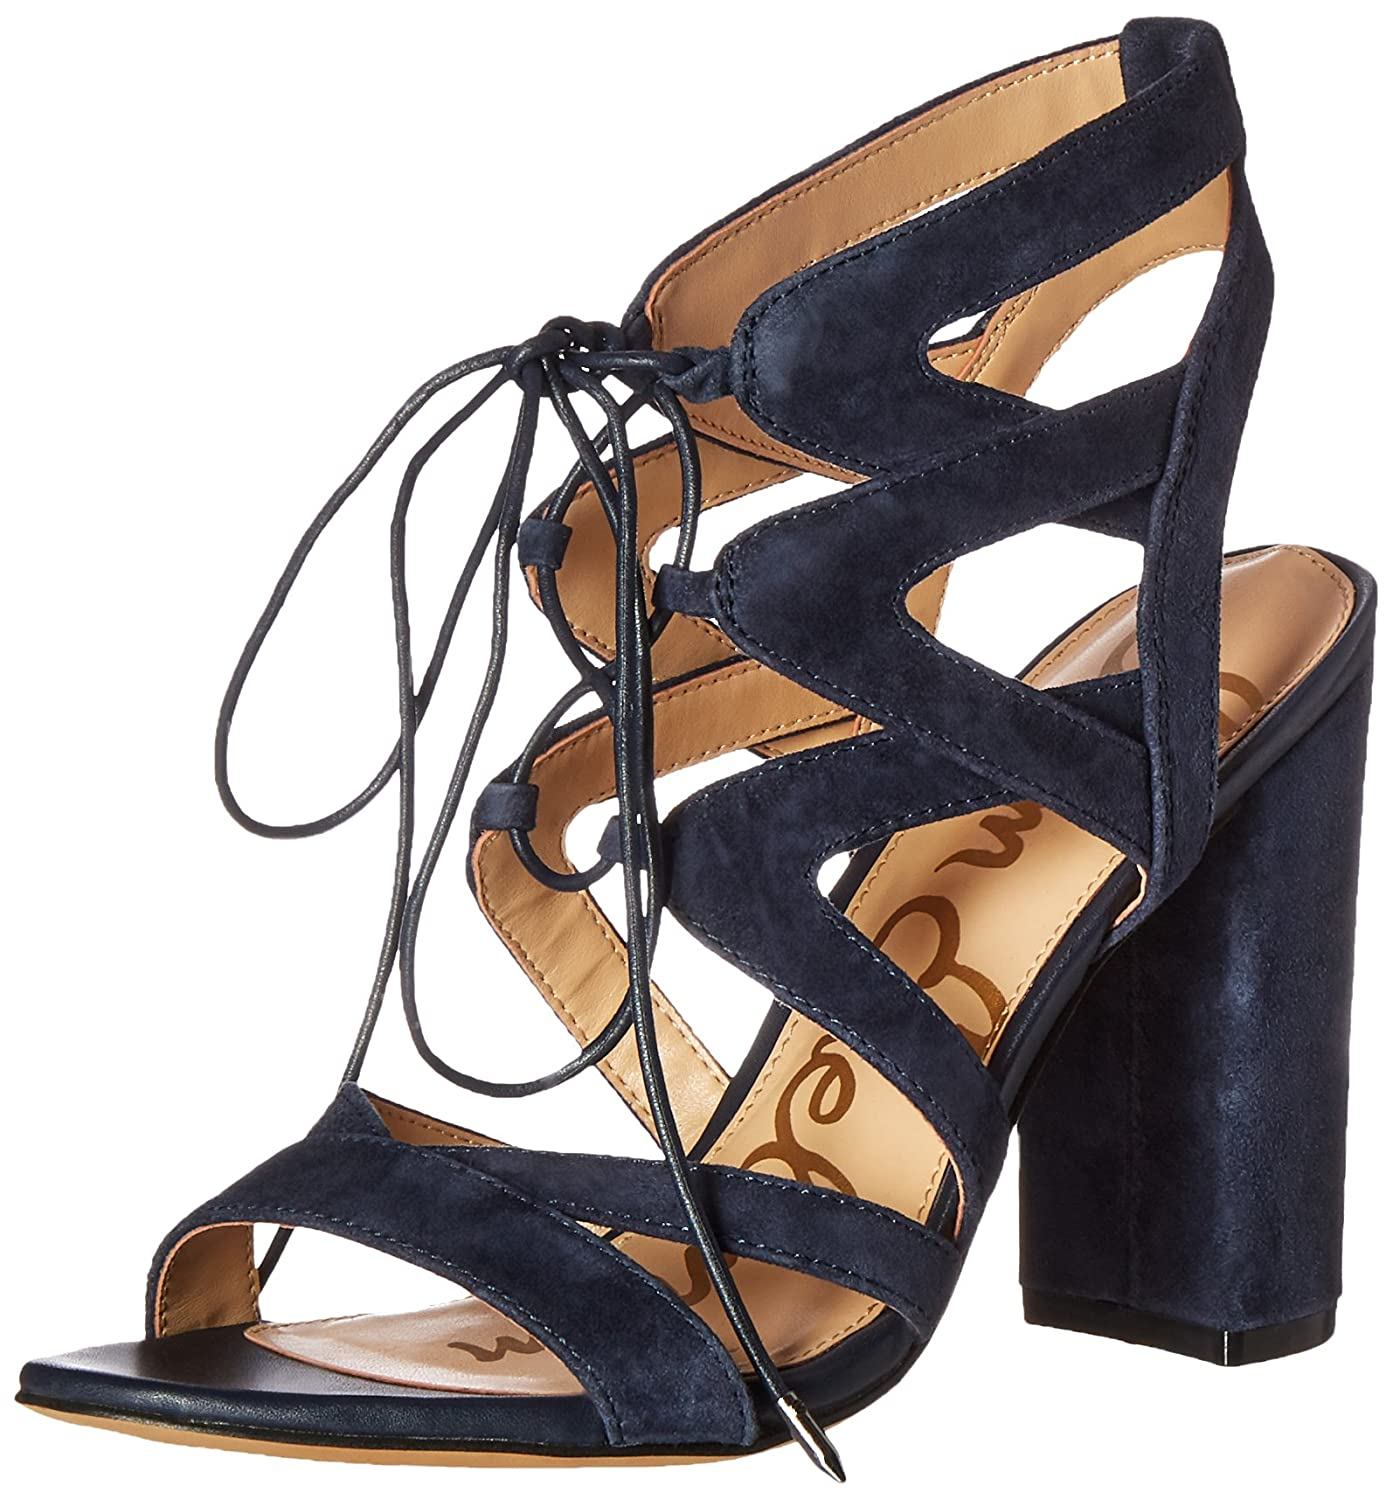 Sam Edelman Wohommes Yardley Heeled Sandal, Inky Navy, 5.5 M US